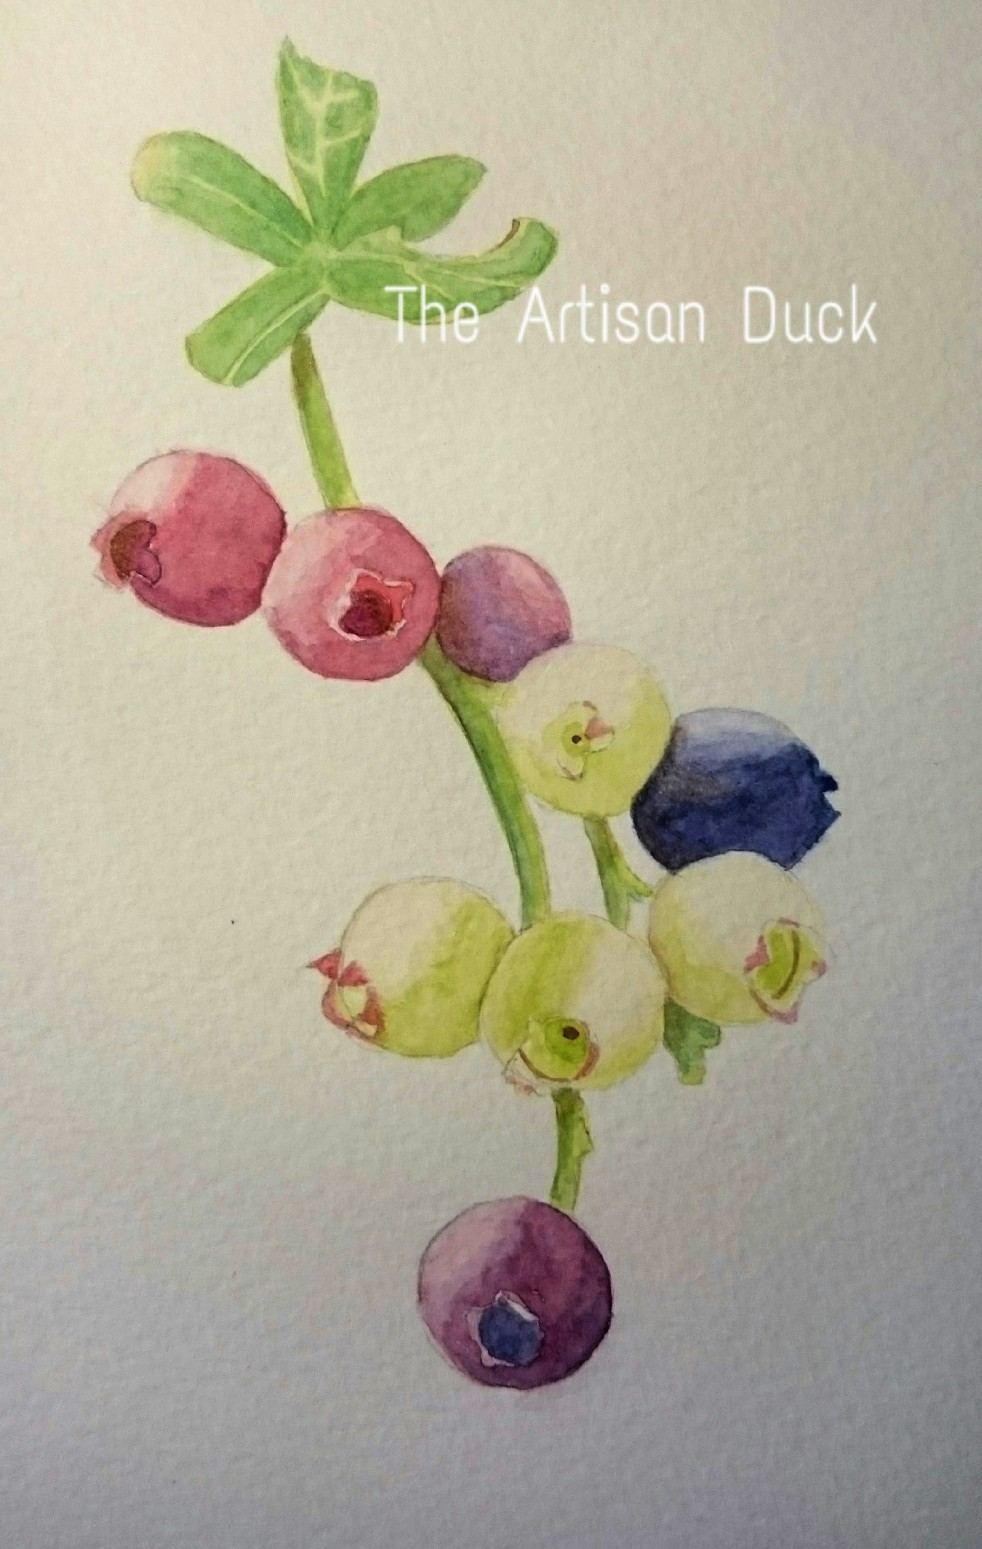 Watercolour bluberries painting